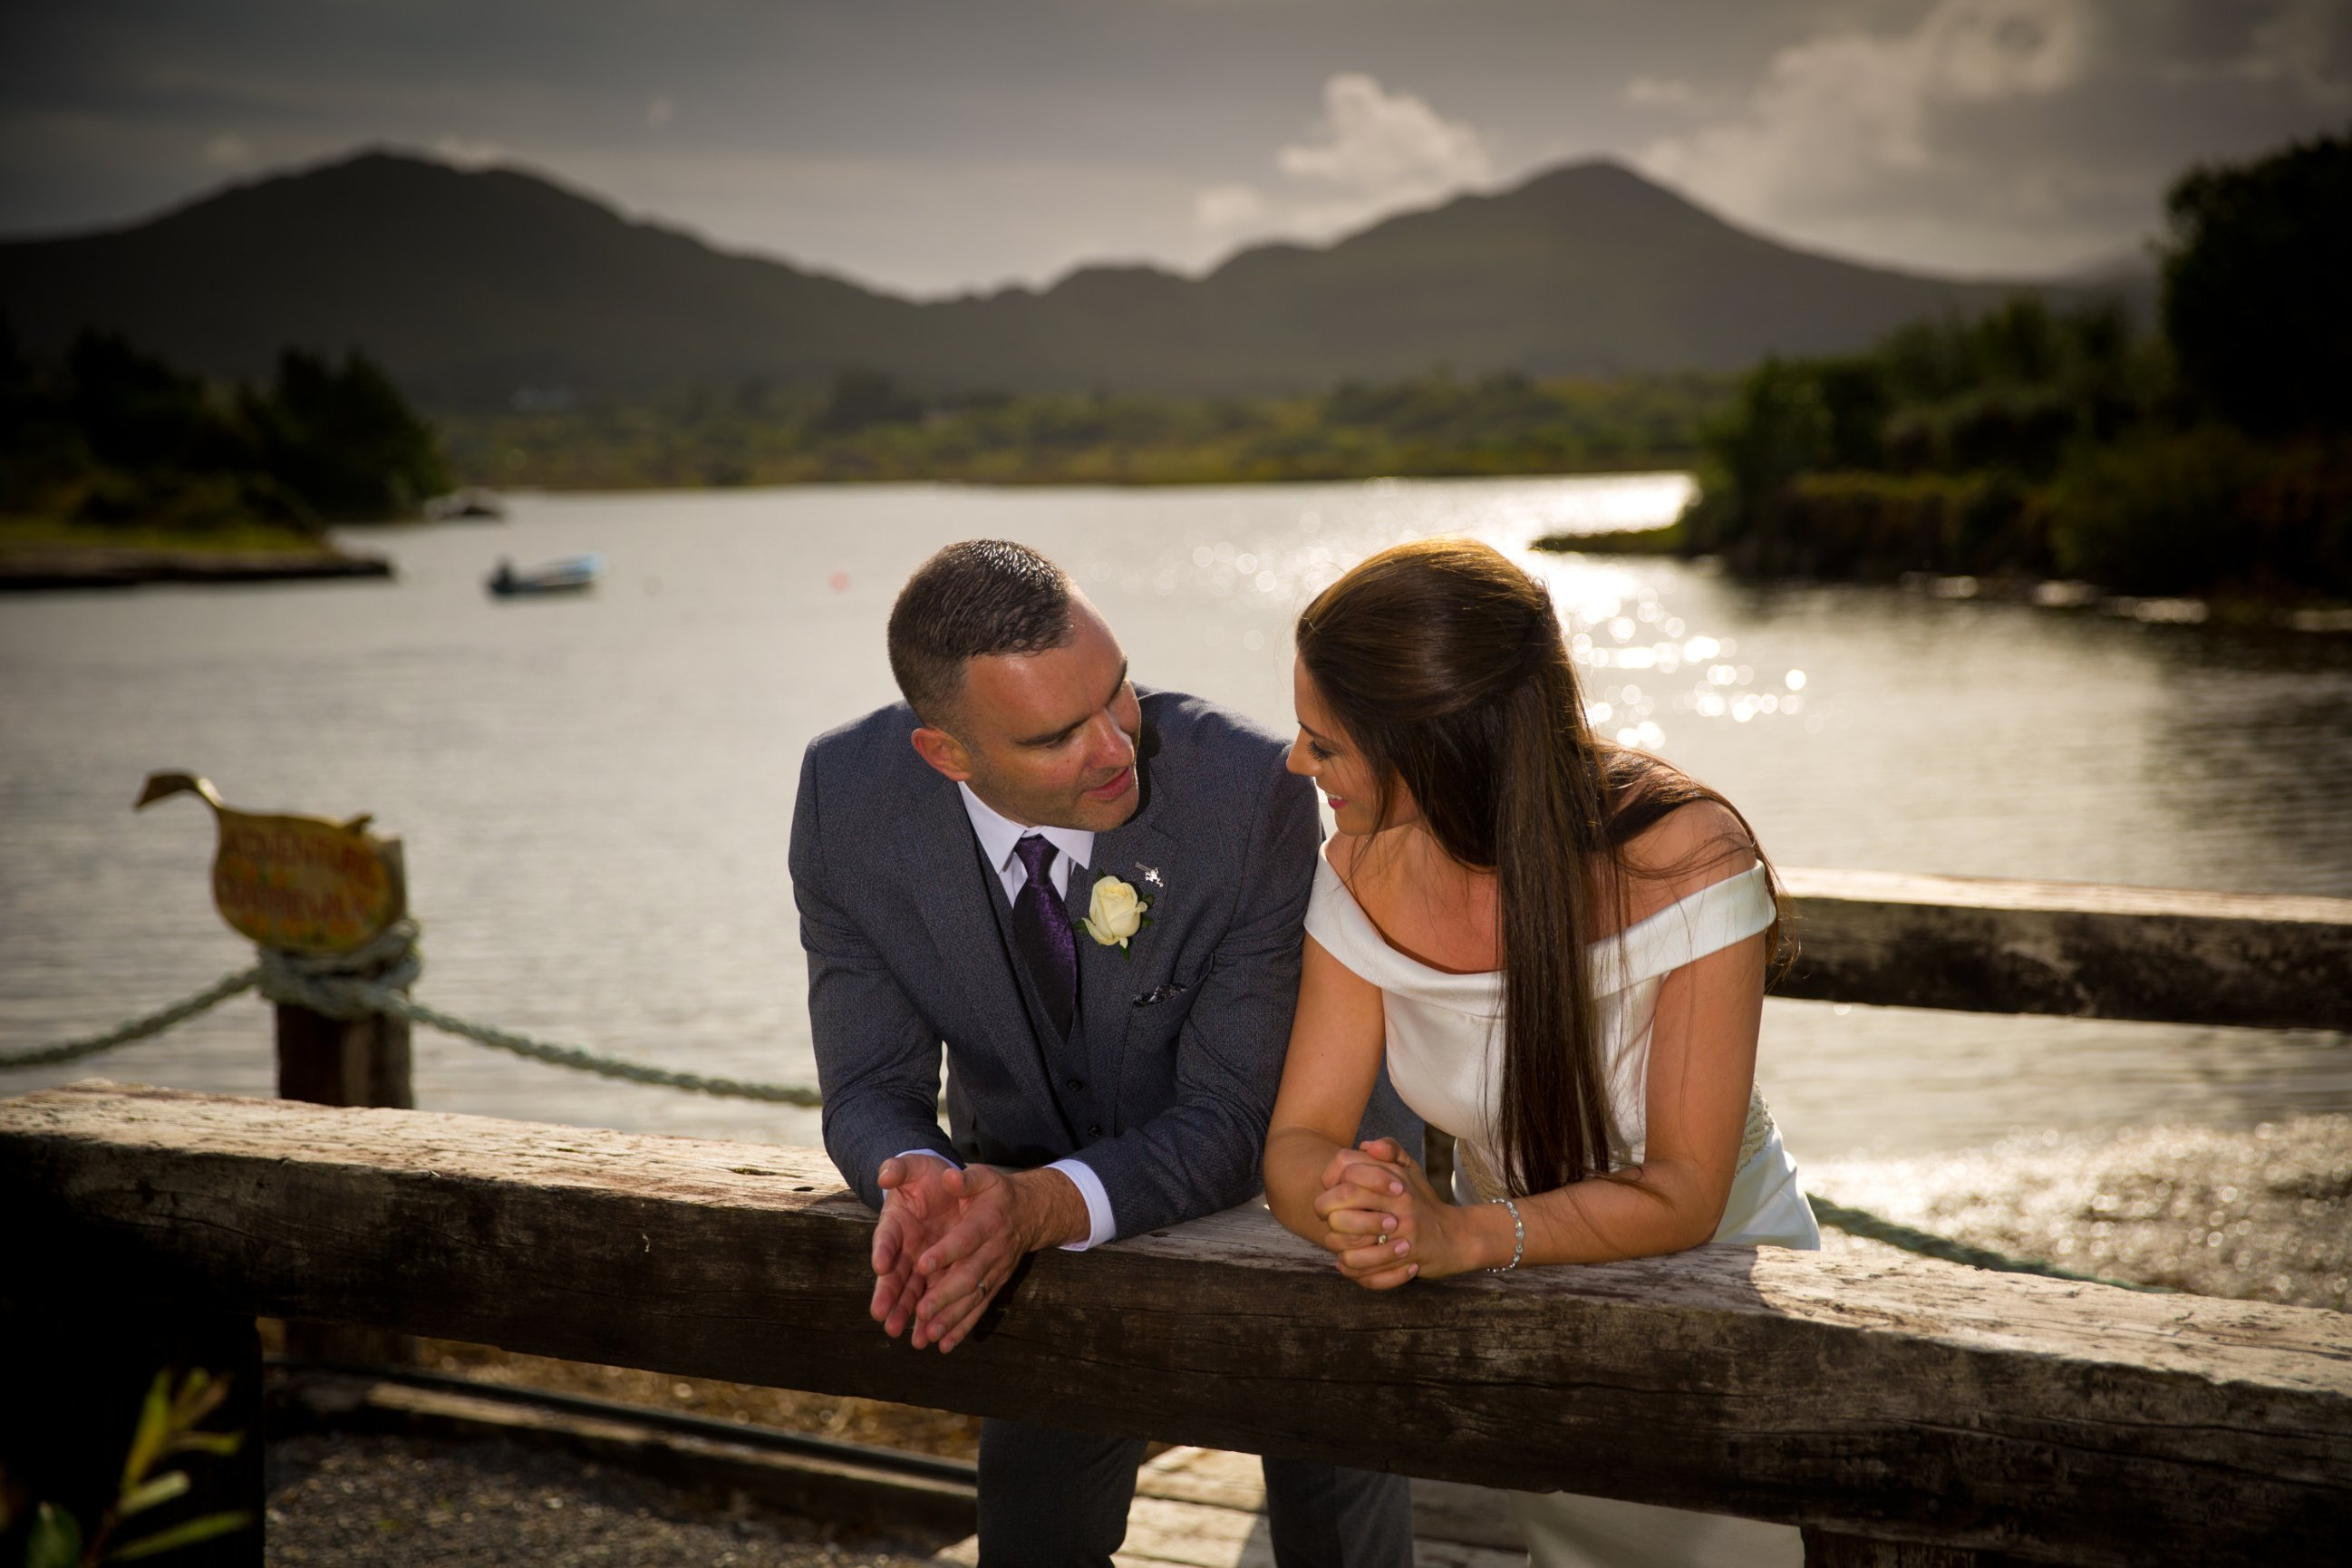 Norman McCloskey Photography (Kenmare) - TripAdvisor